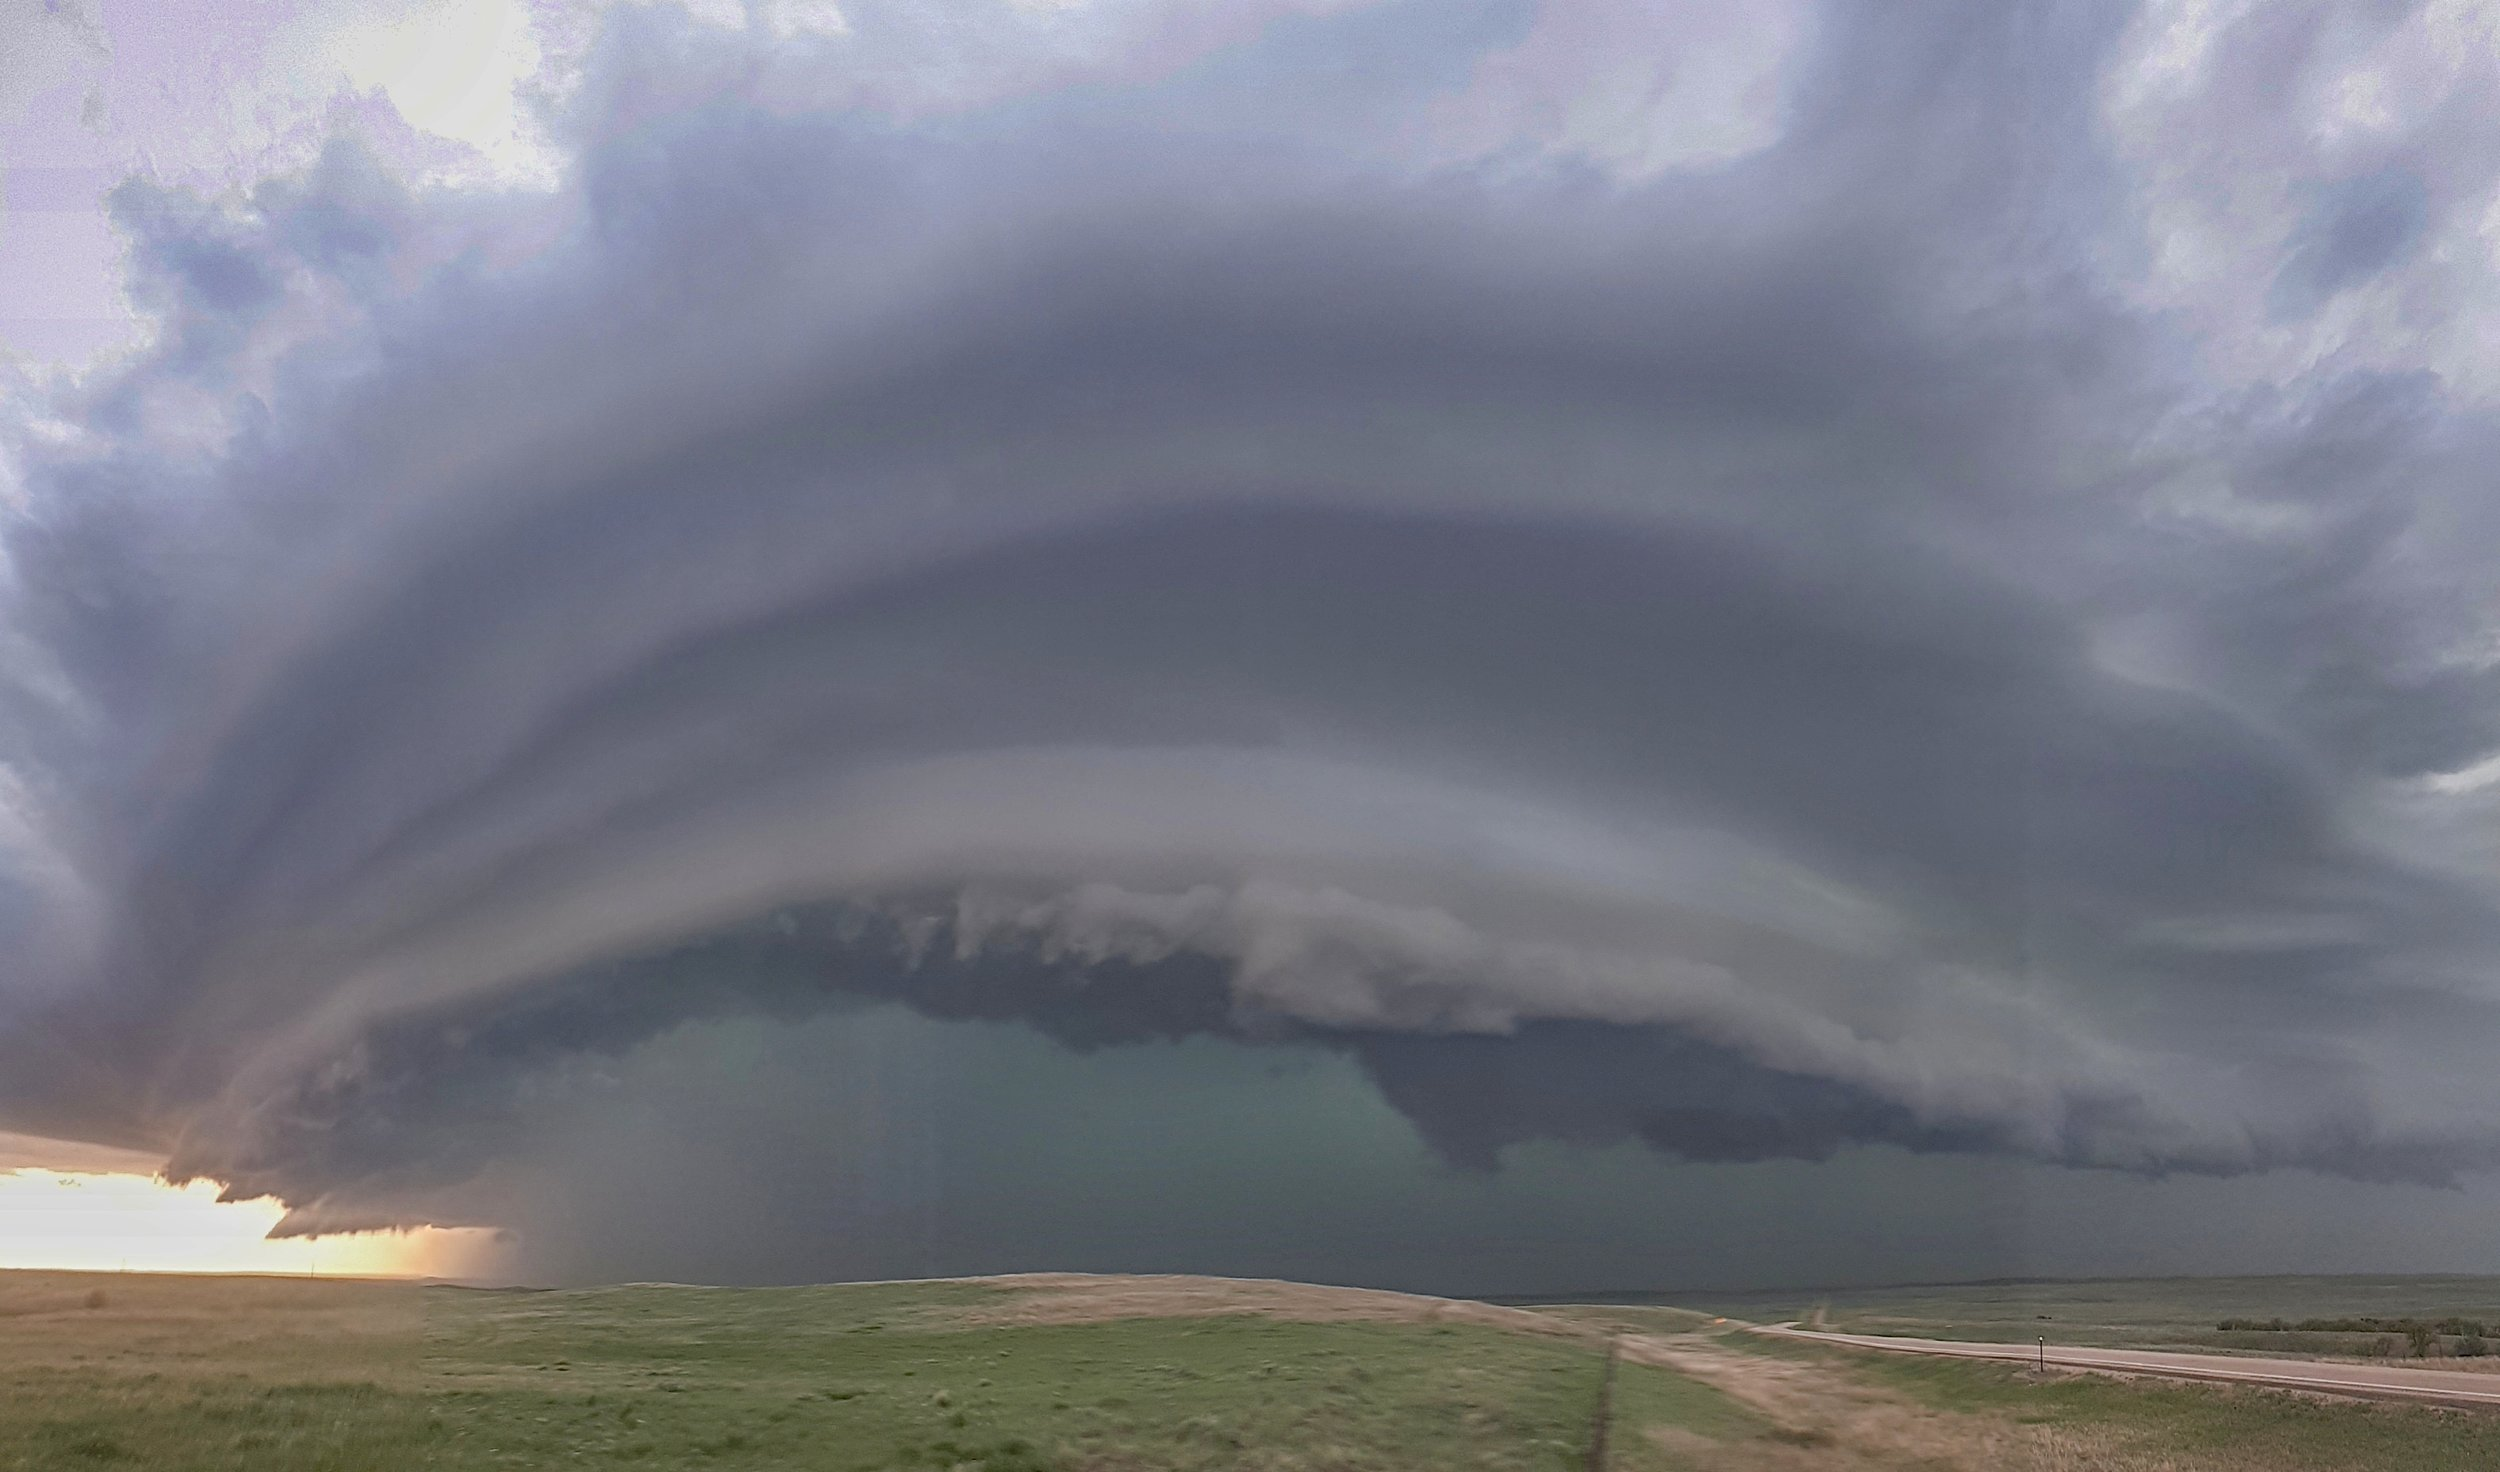 North-east of Rapid City, South Dakota. The mothership is coming